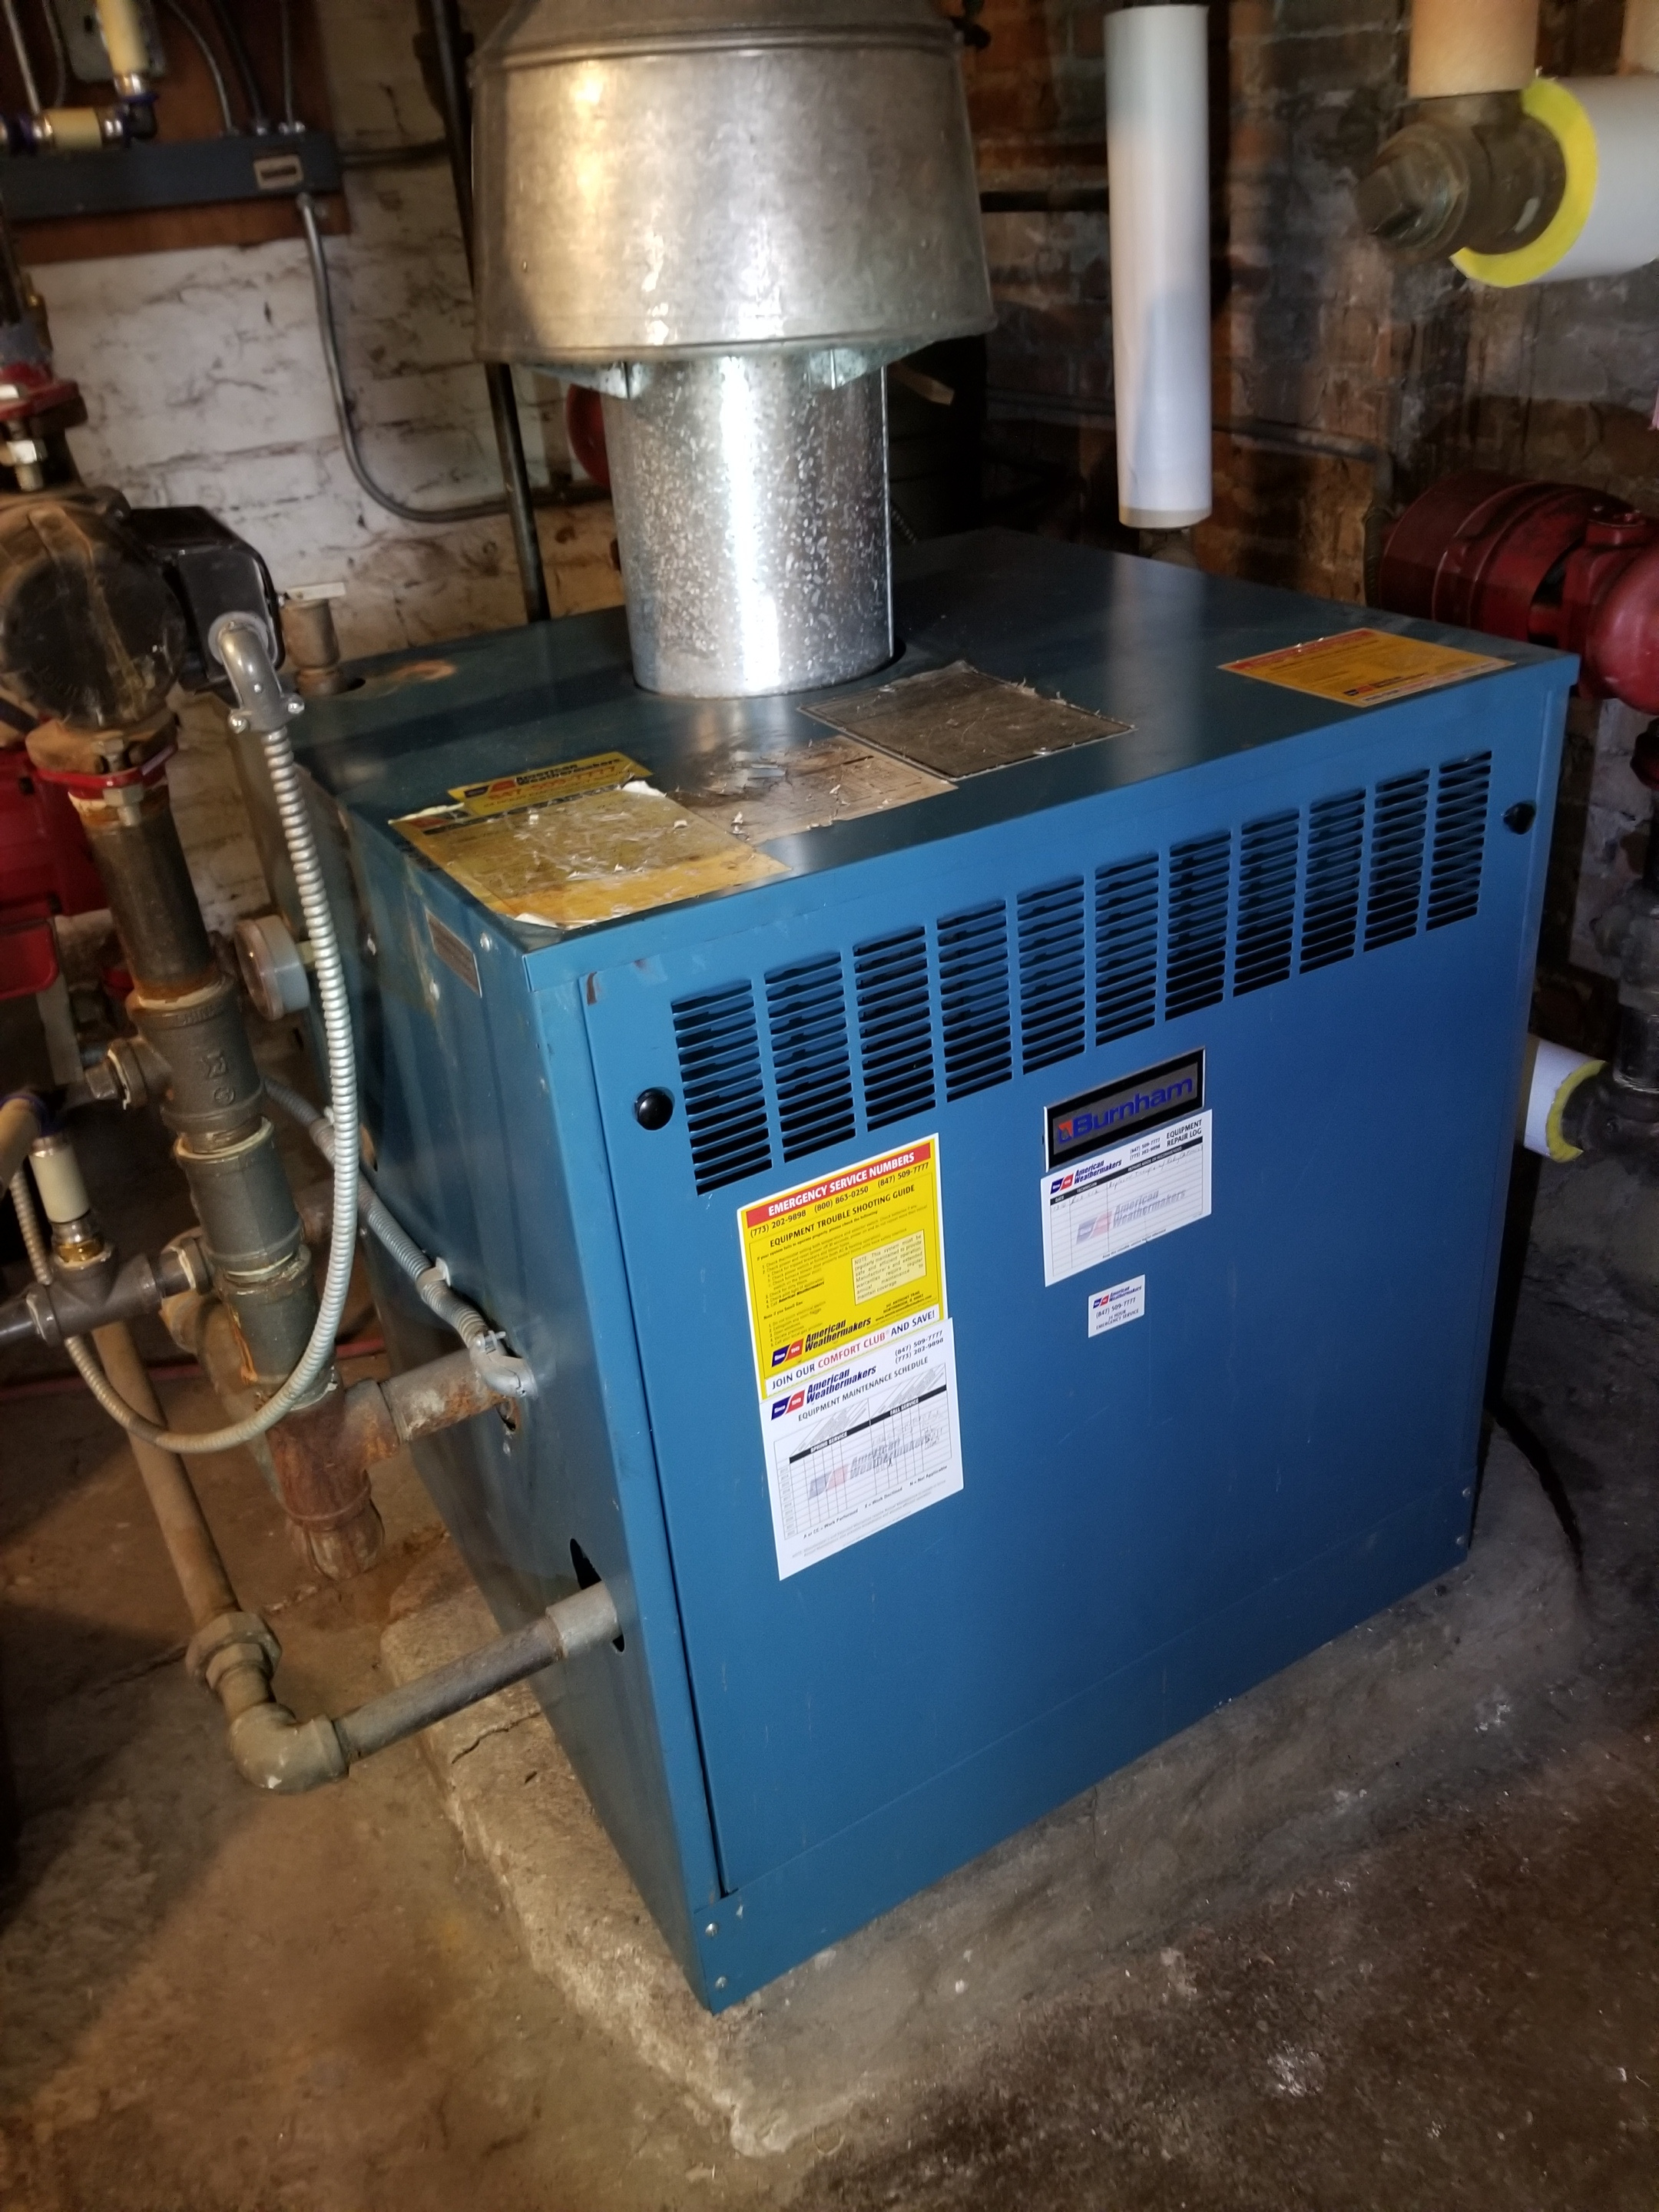 Performed annual maintenance on the Burnham boiler and made adjustments to improve the overall efficiency and life expectancy of the equipment